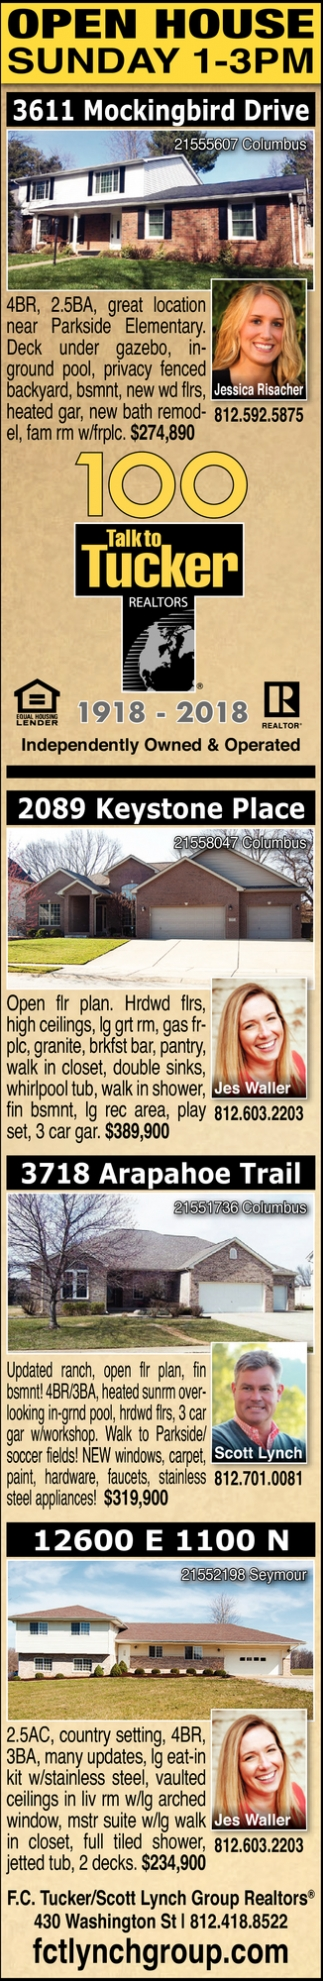 Open Houses Sunday 1-3 PM